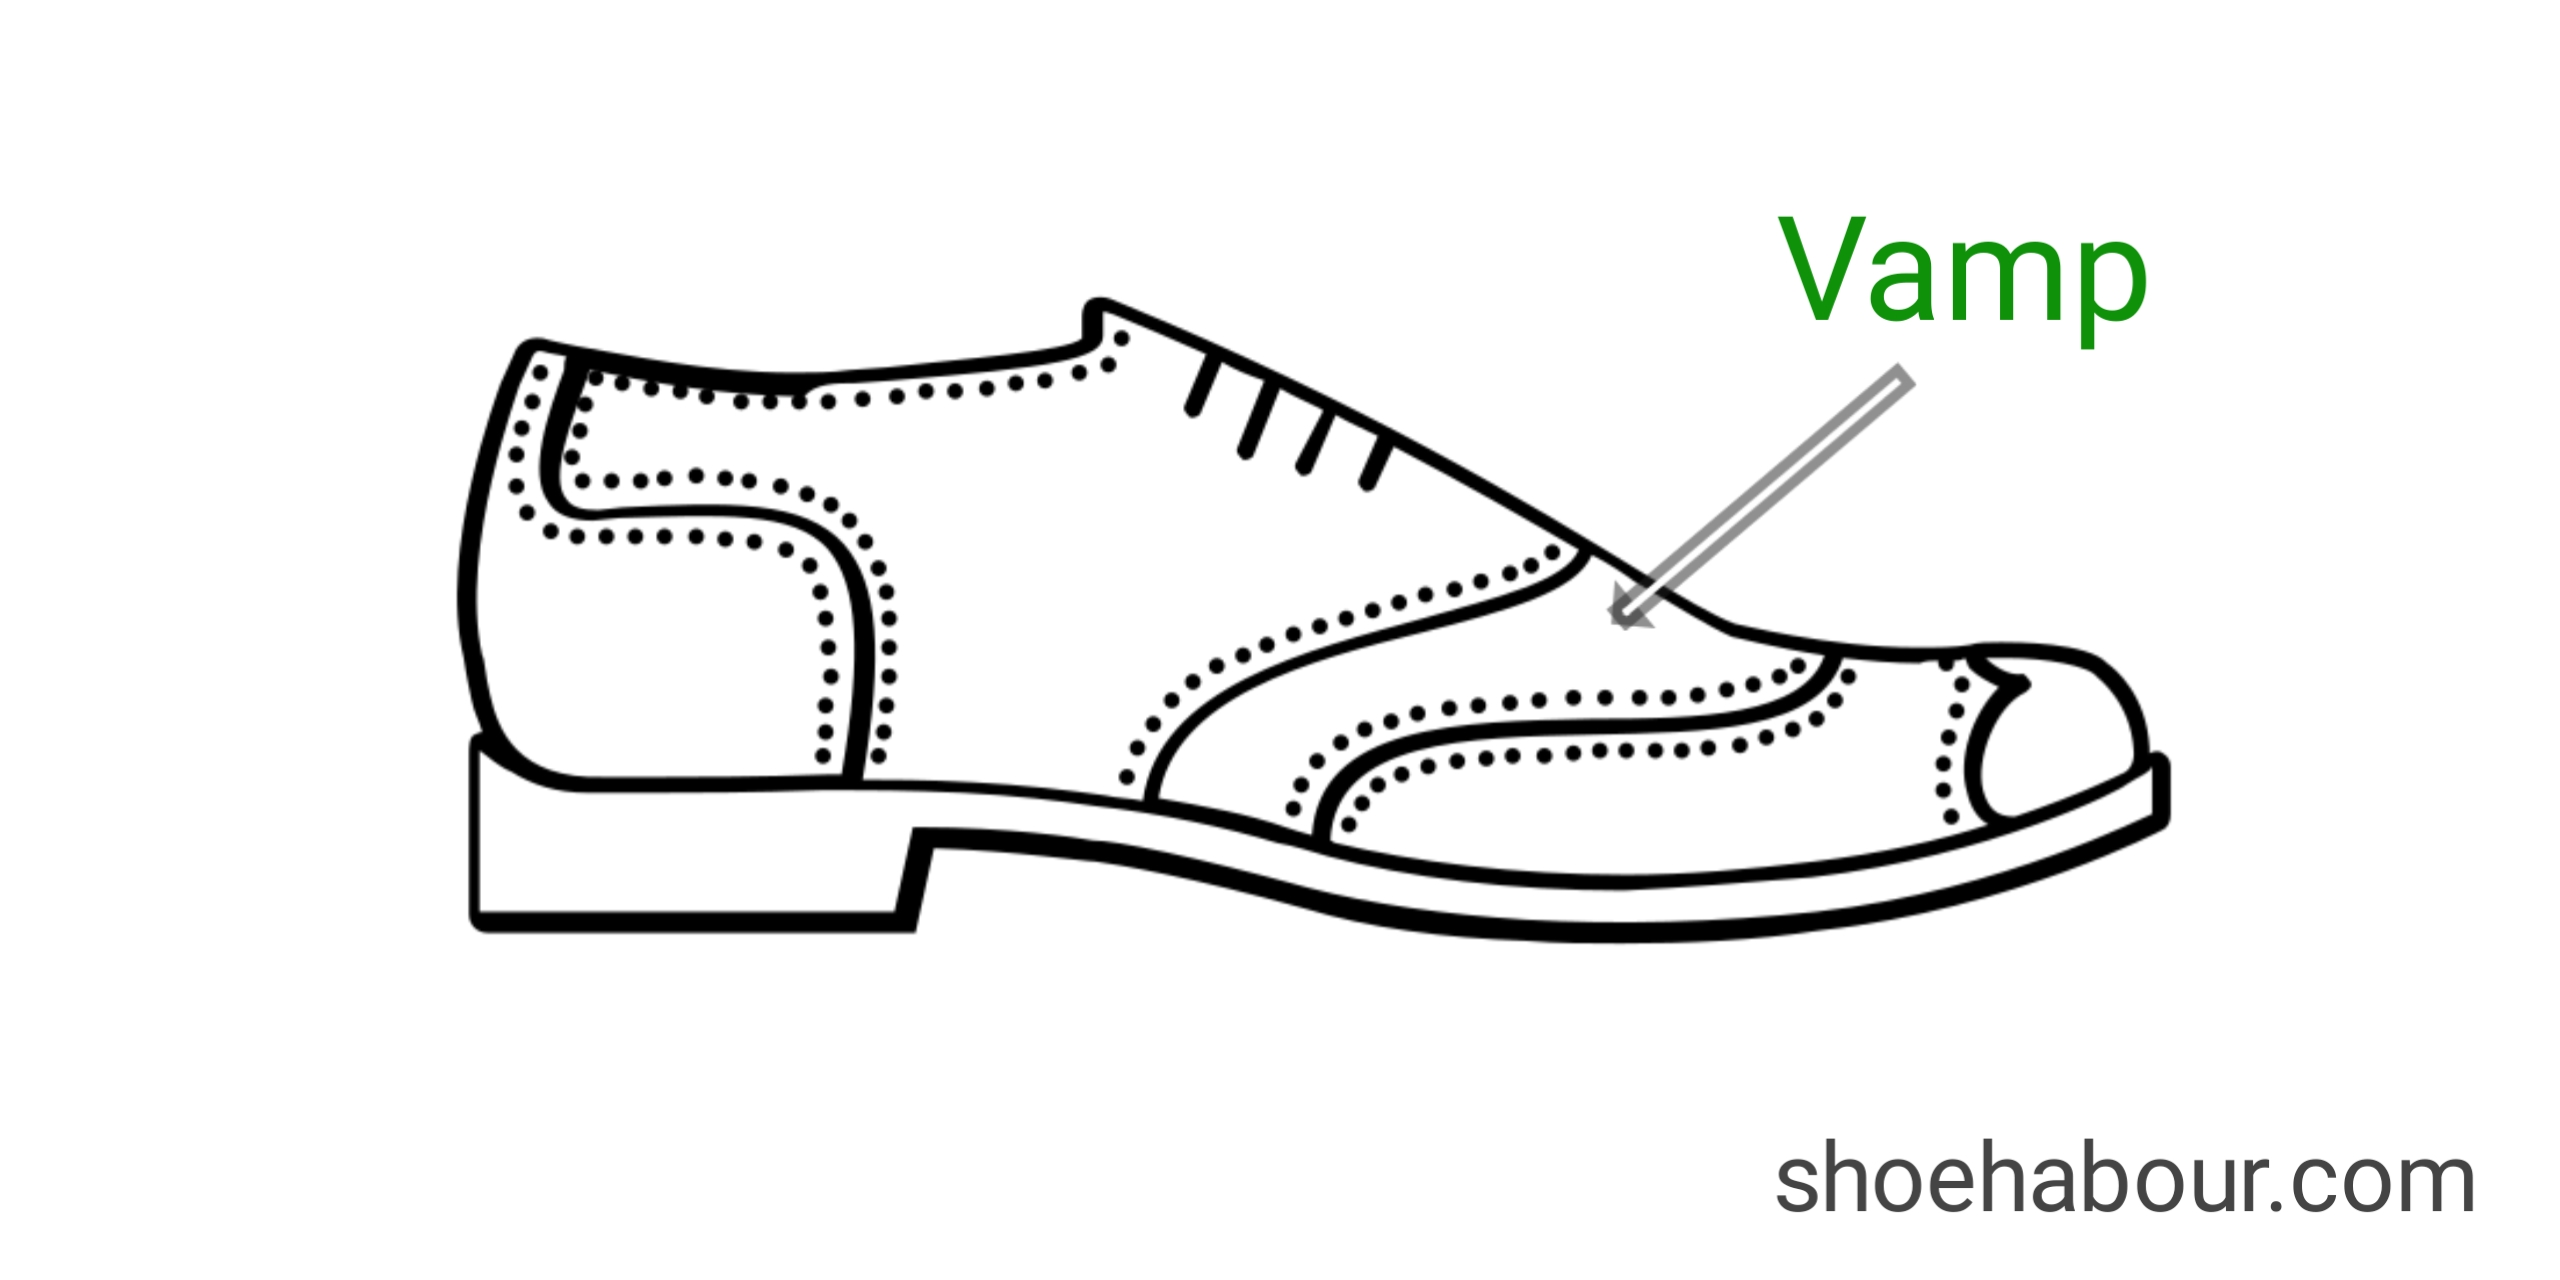 Vamp of a shoe